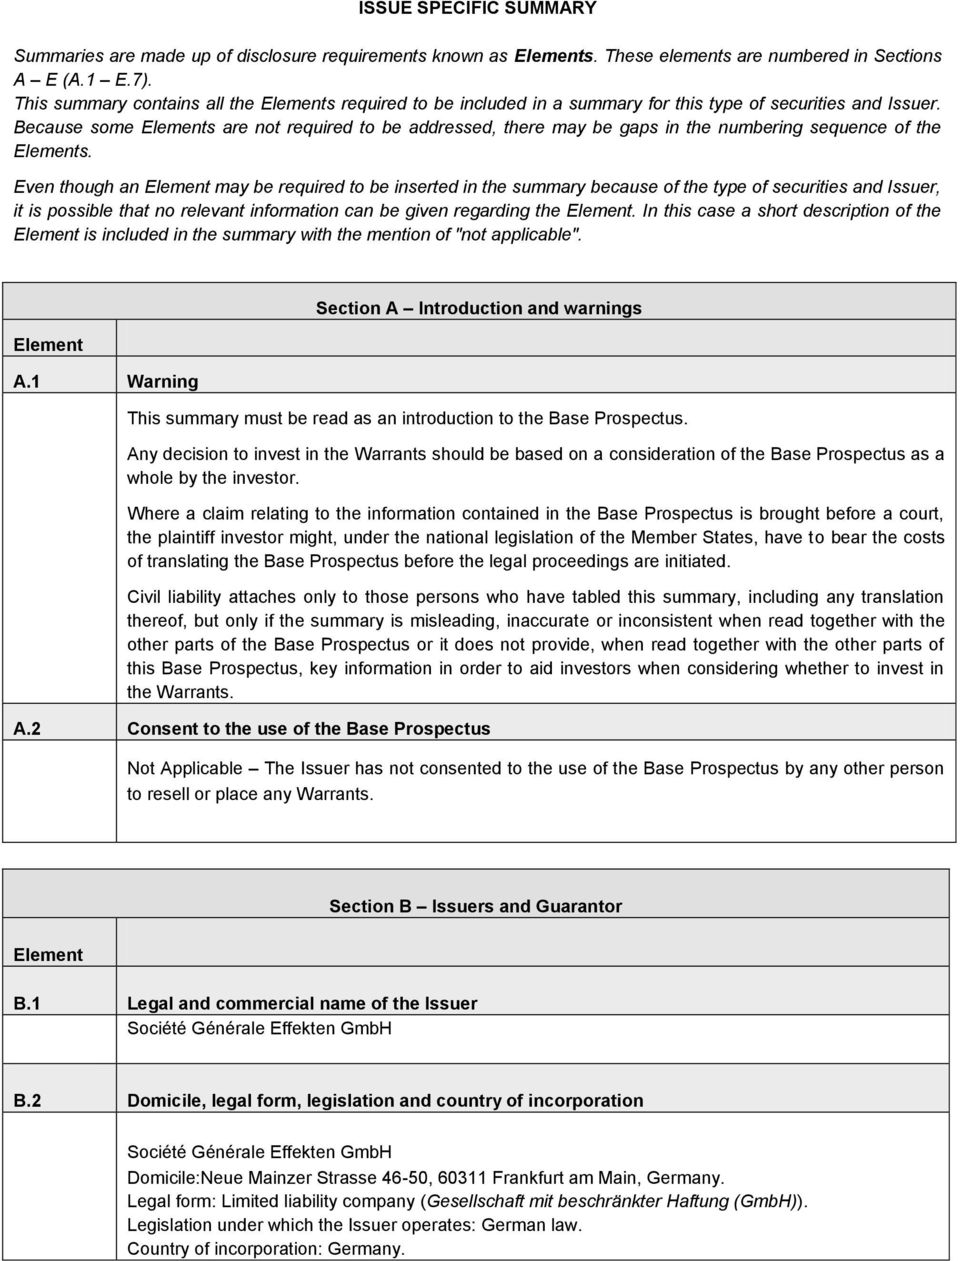 Because some Elements are not required to be addressed, there may be gaps in the numbering sequence of the Elements.